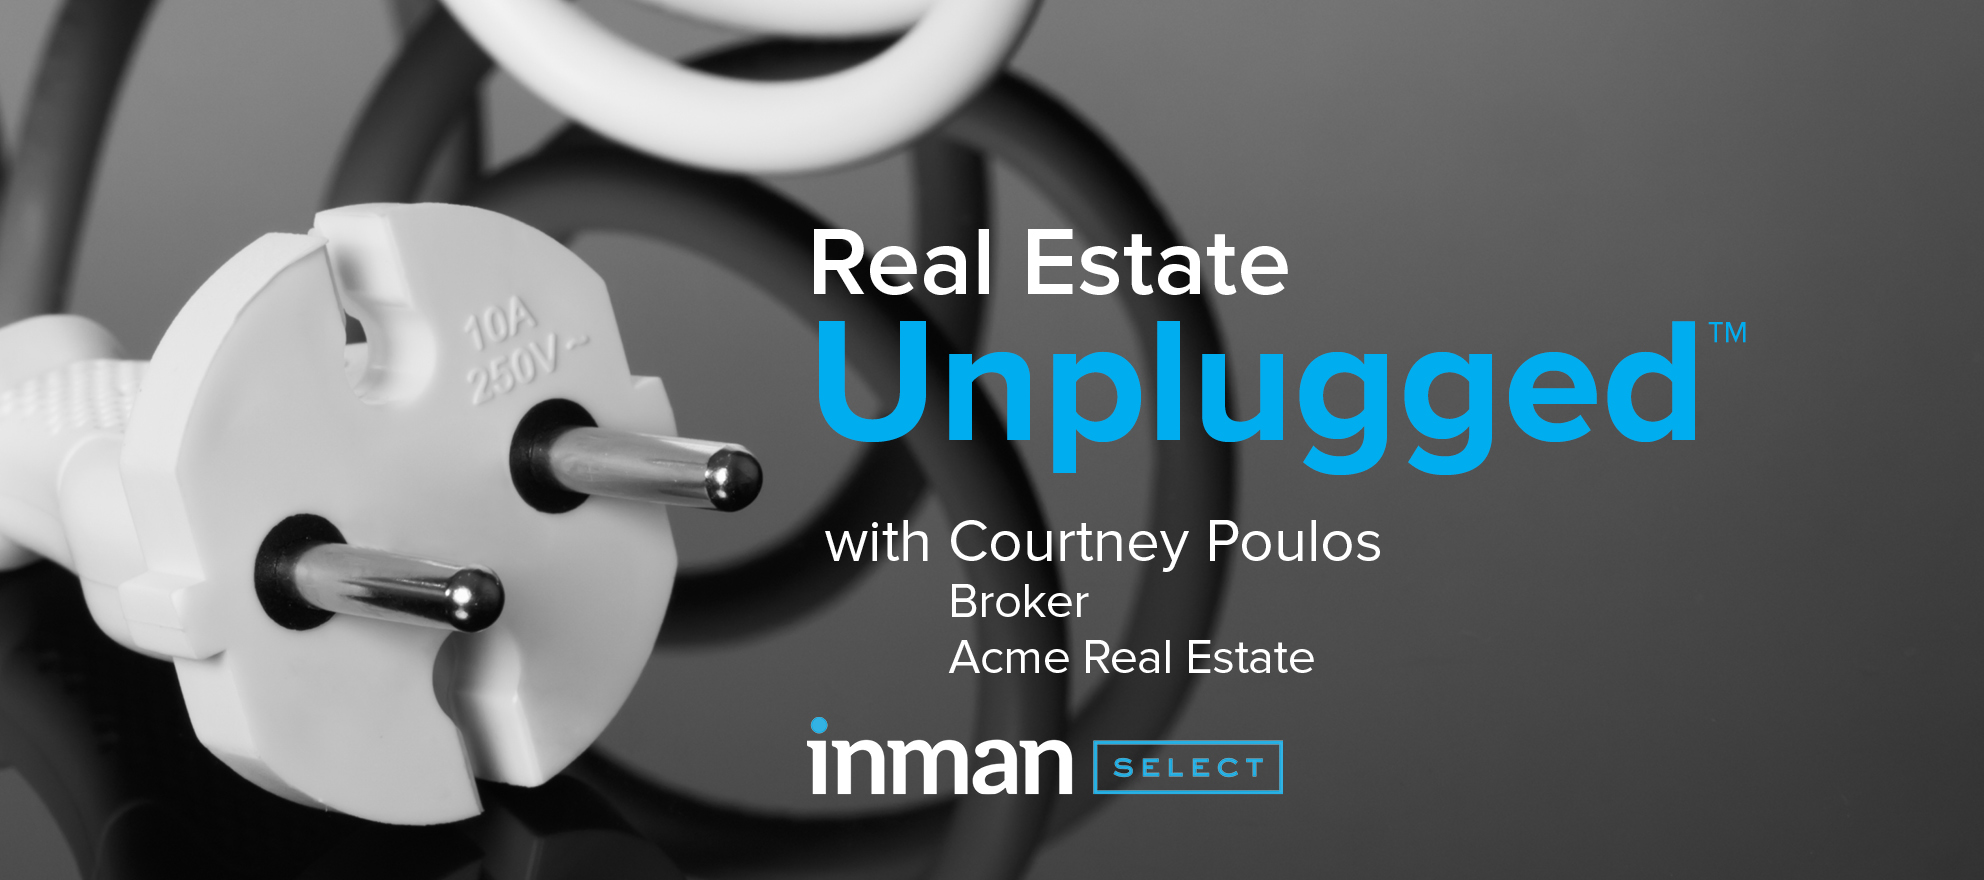 Courtney Poulos on offering life-work balance to her agents